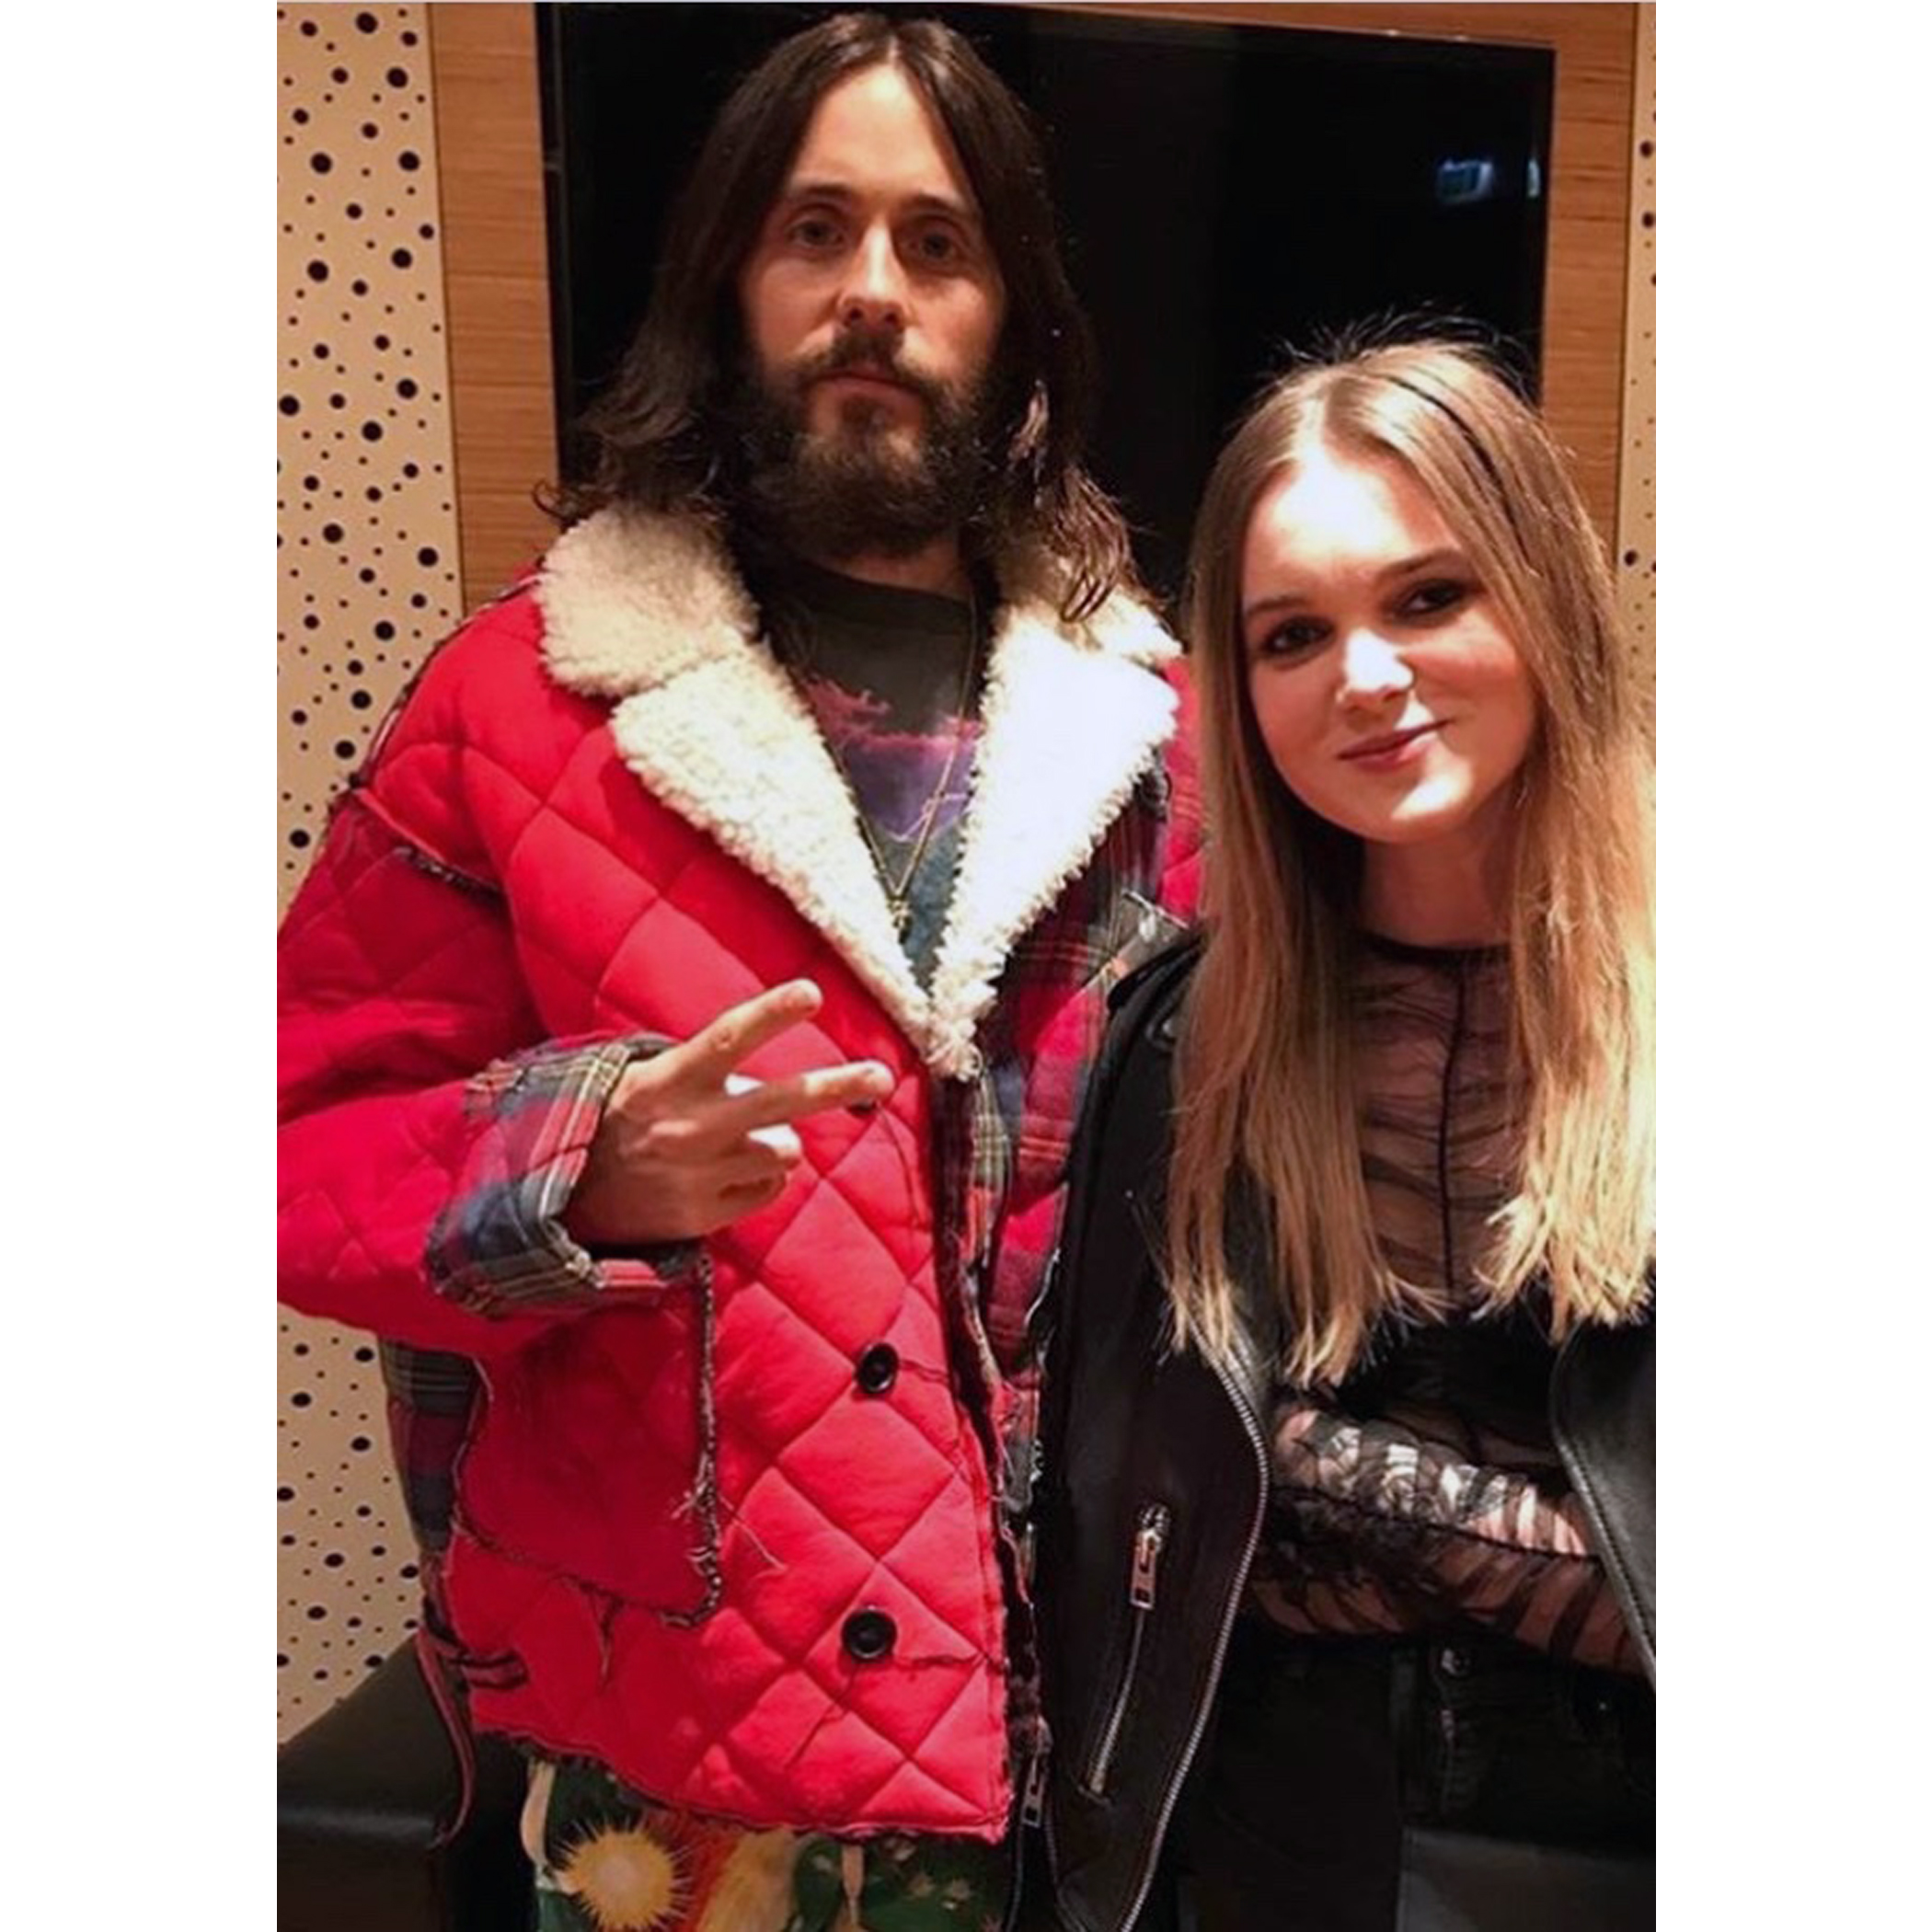 jared leto clipping_IG3.jpg